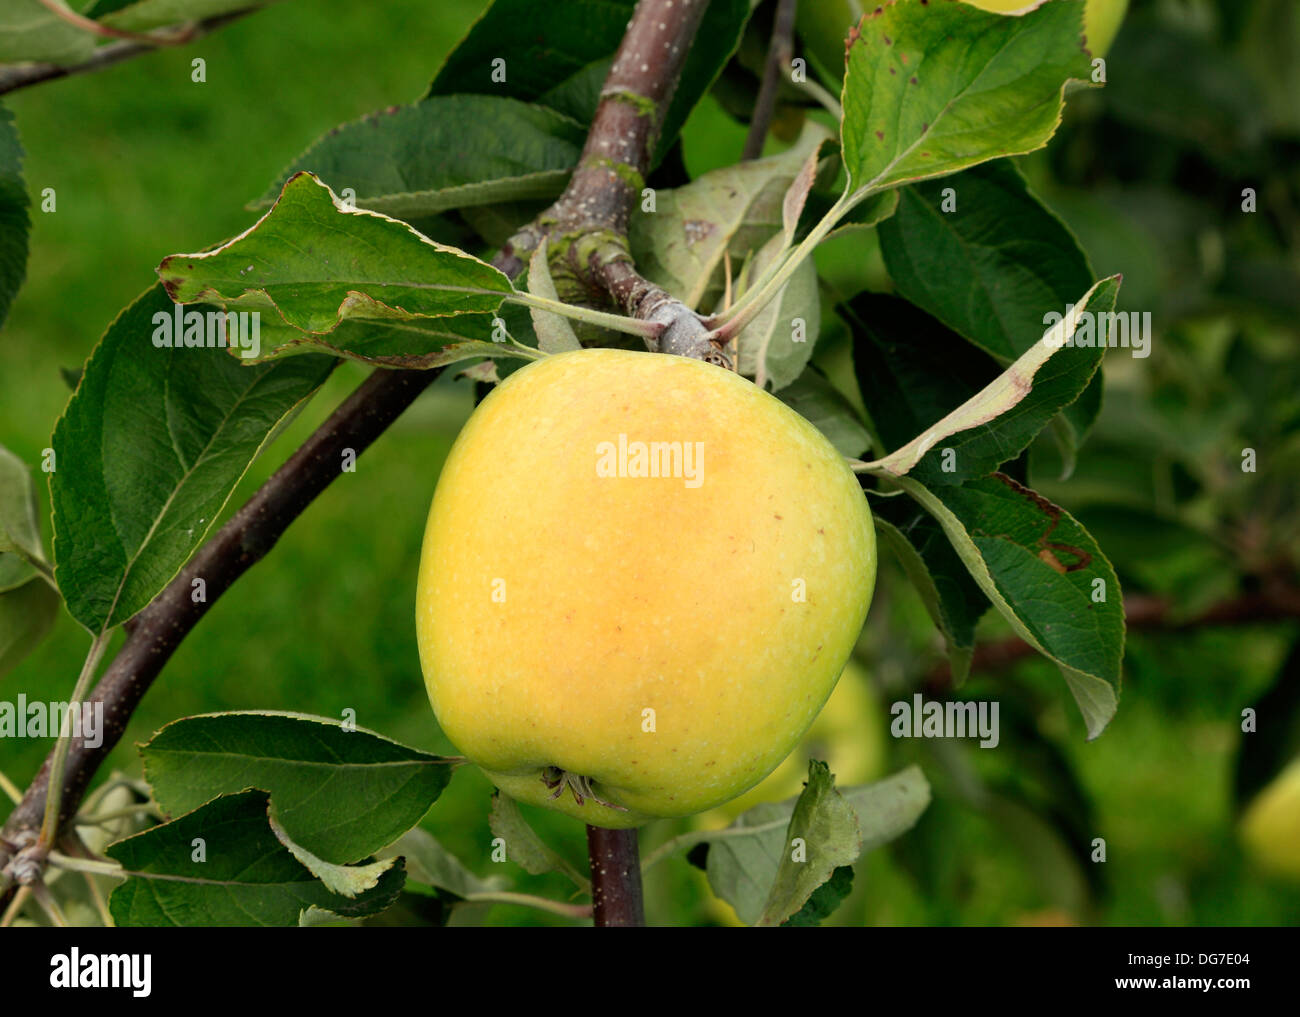 Apple ''Woodford', named culinary cooking - Stock Image